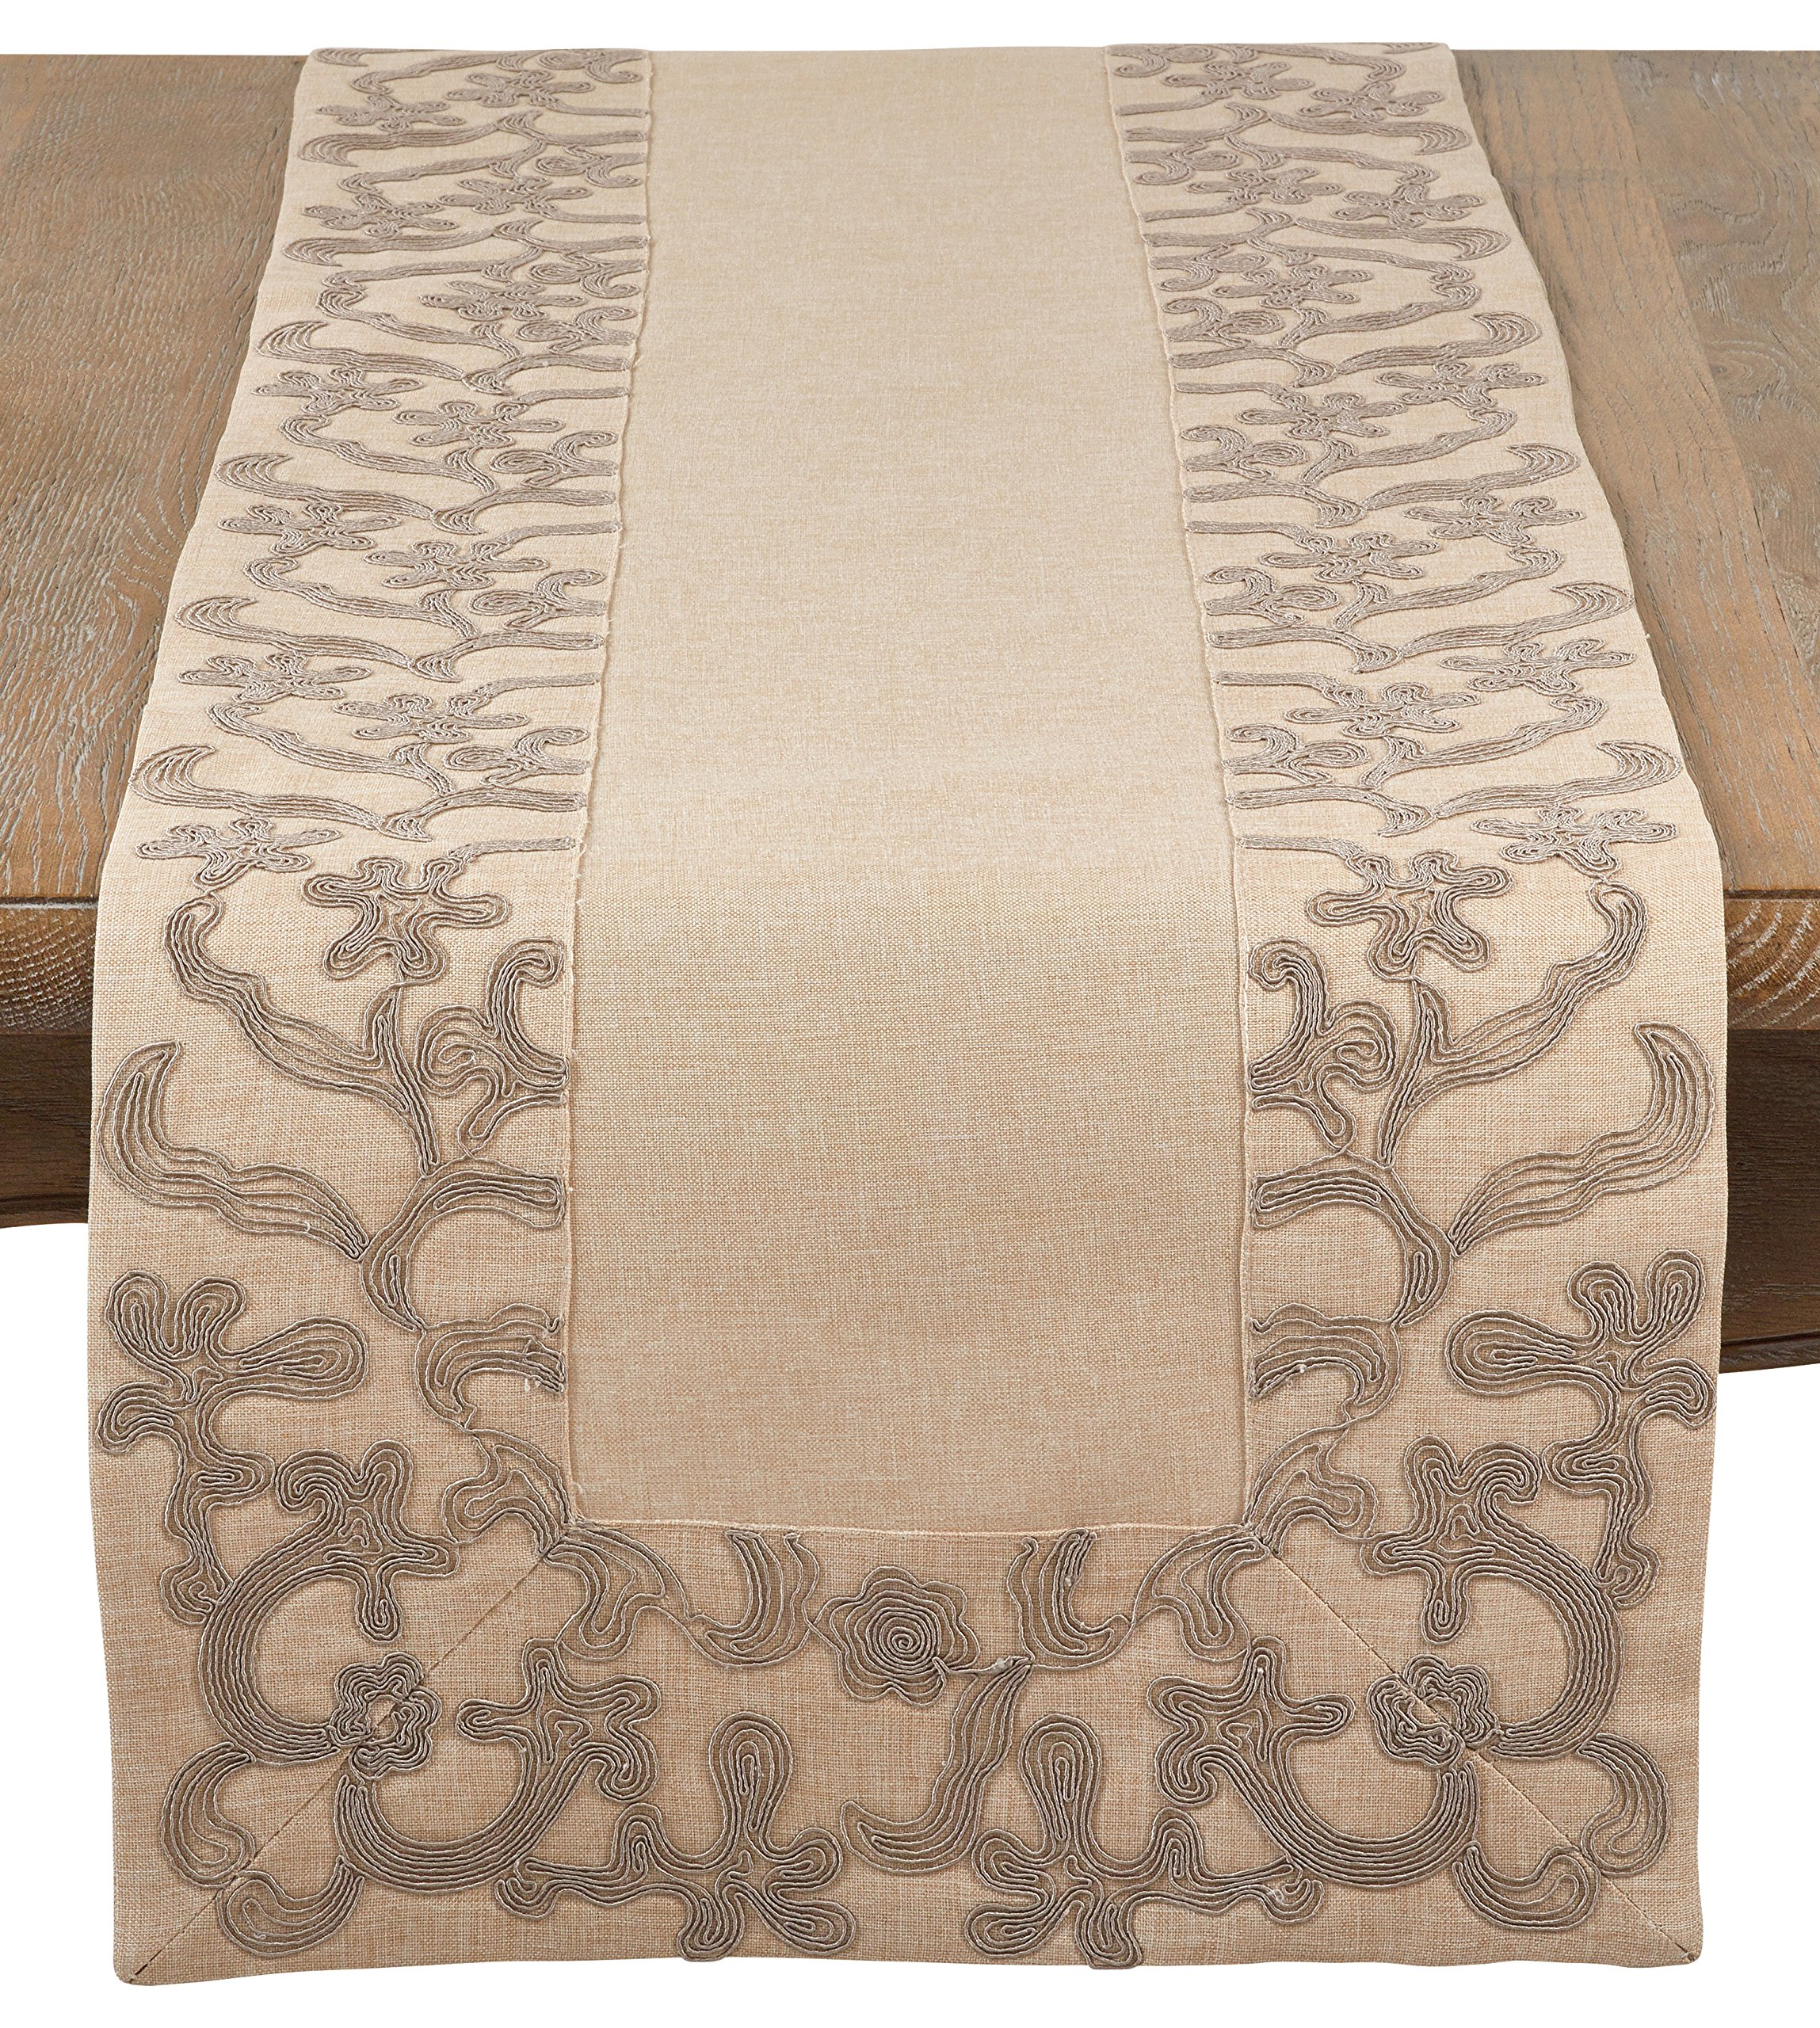 SARO LIFESTYLE Floral Embroidered Border Design Table Runner, 16'' x 72'', Natural